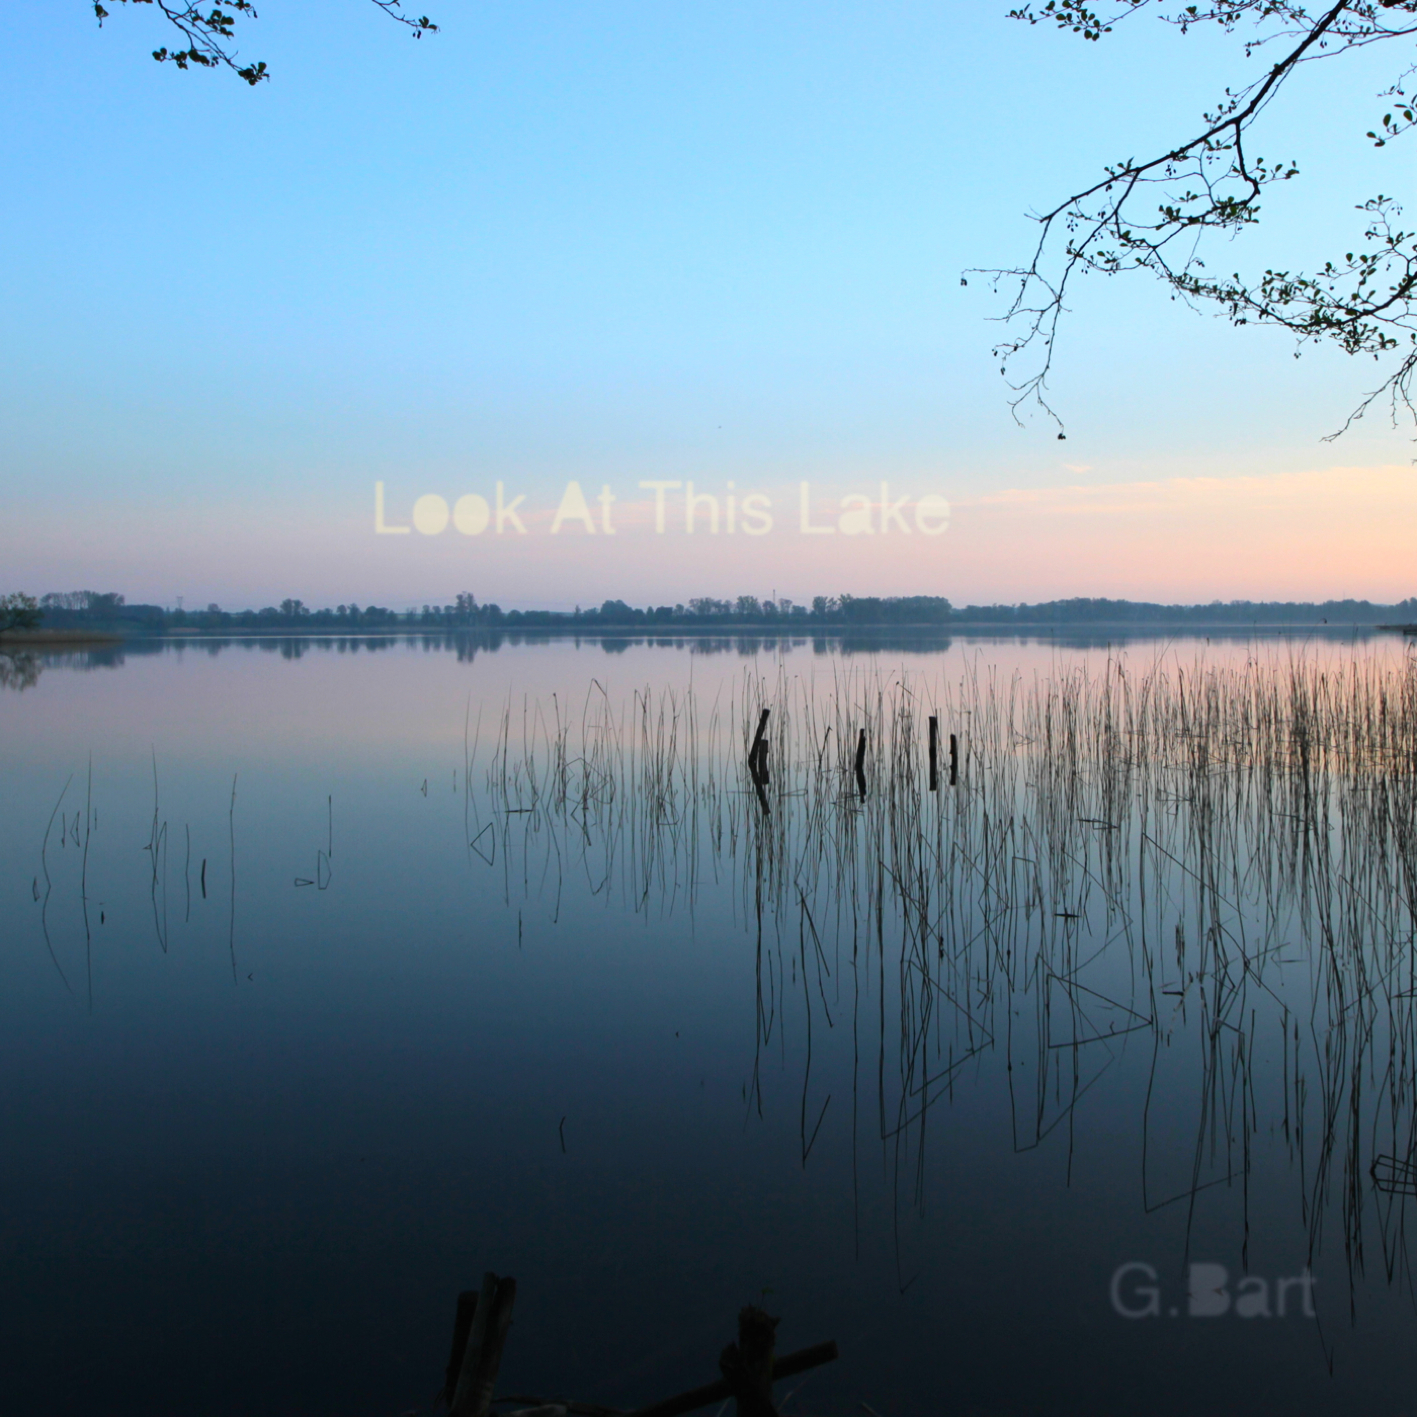 chill52-14_G.Bart_-_Look_At_This_Lake_front